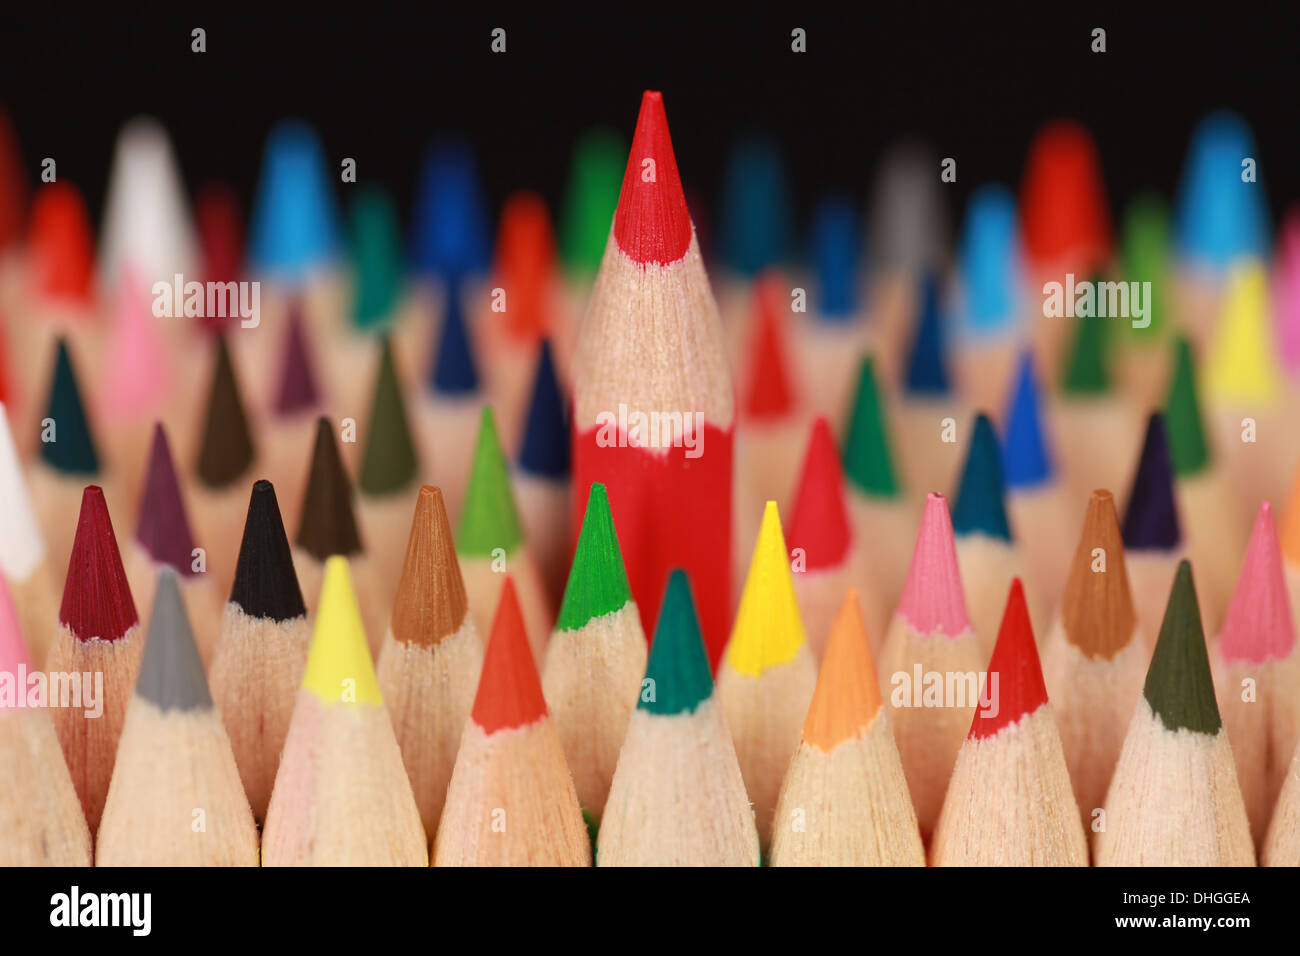 Concept picture red pencil standing out from the crowd Stock Photo